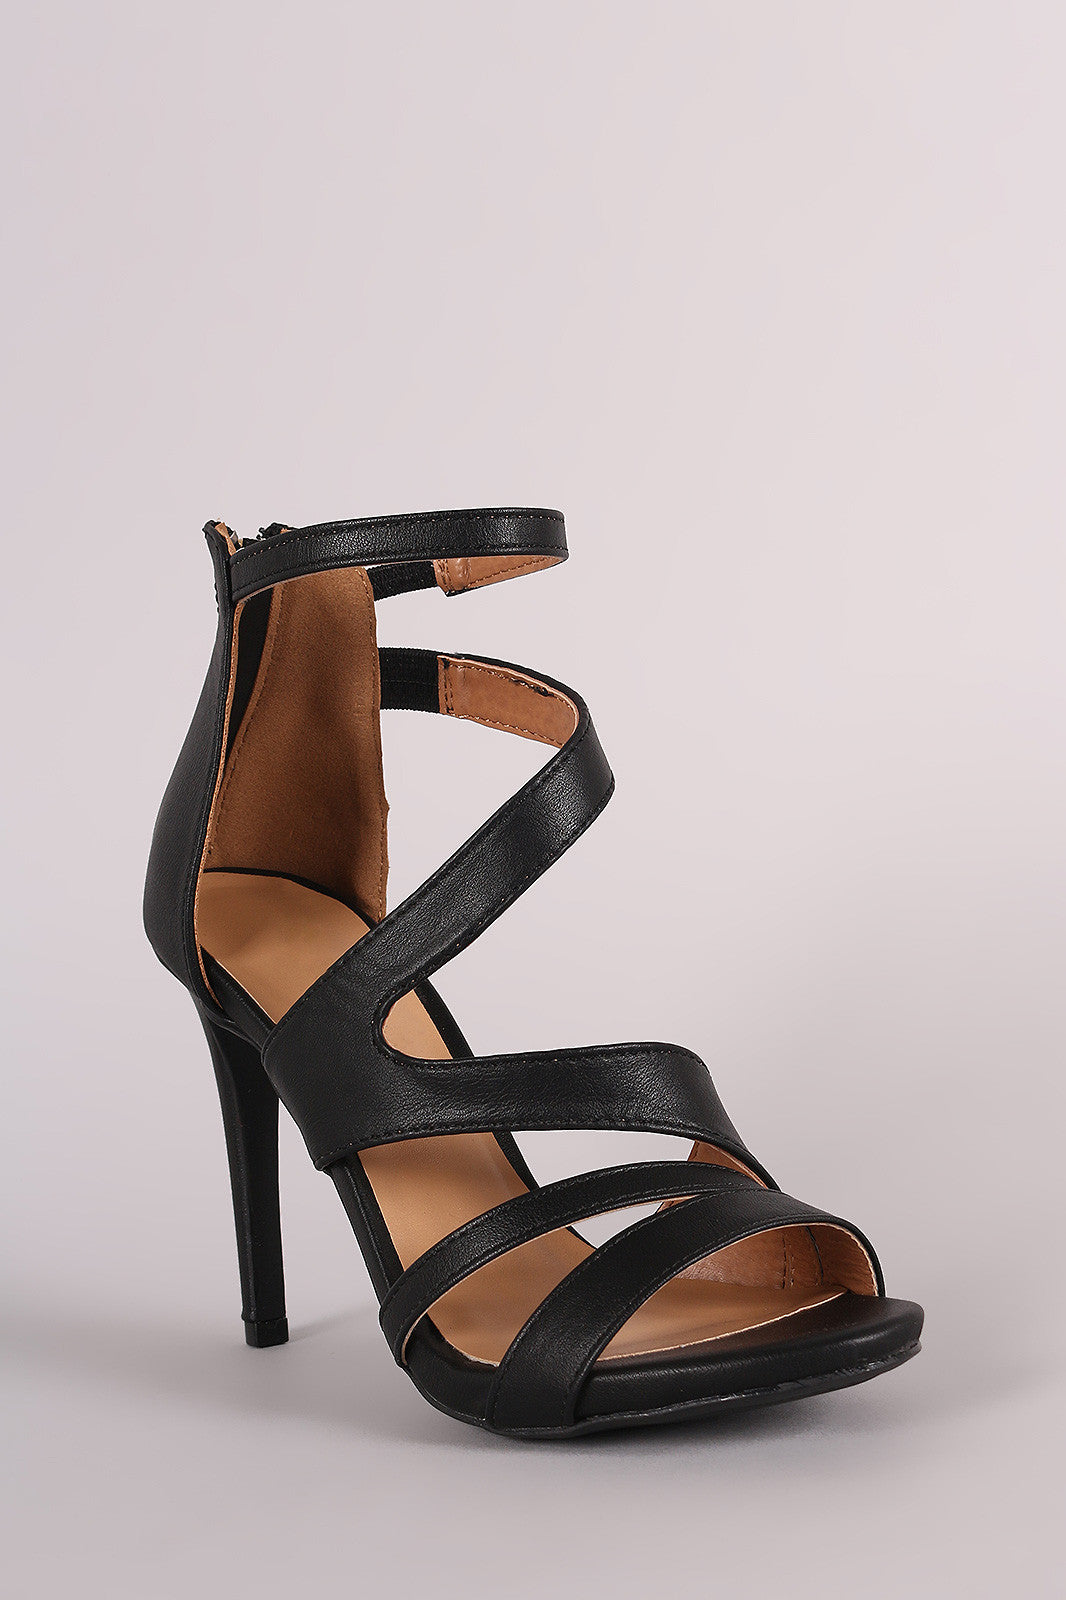 Anne Michelle Strappy Slanted Peep Toe Stiletto Heel - Thick 'N' Curvy Shop - 5